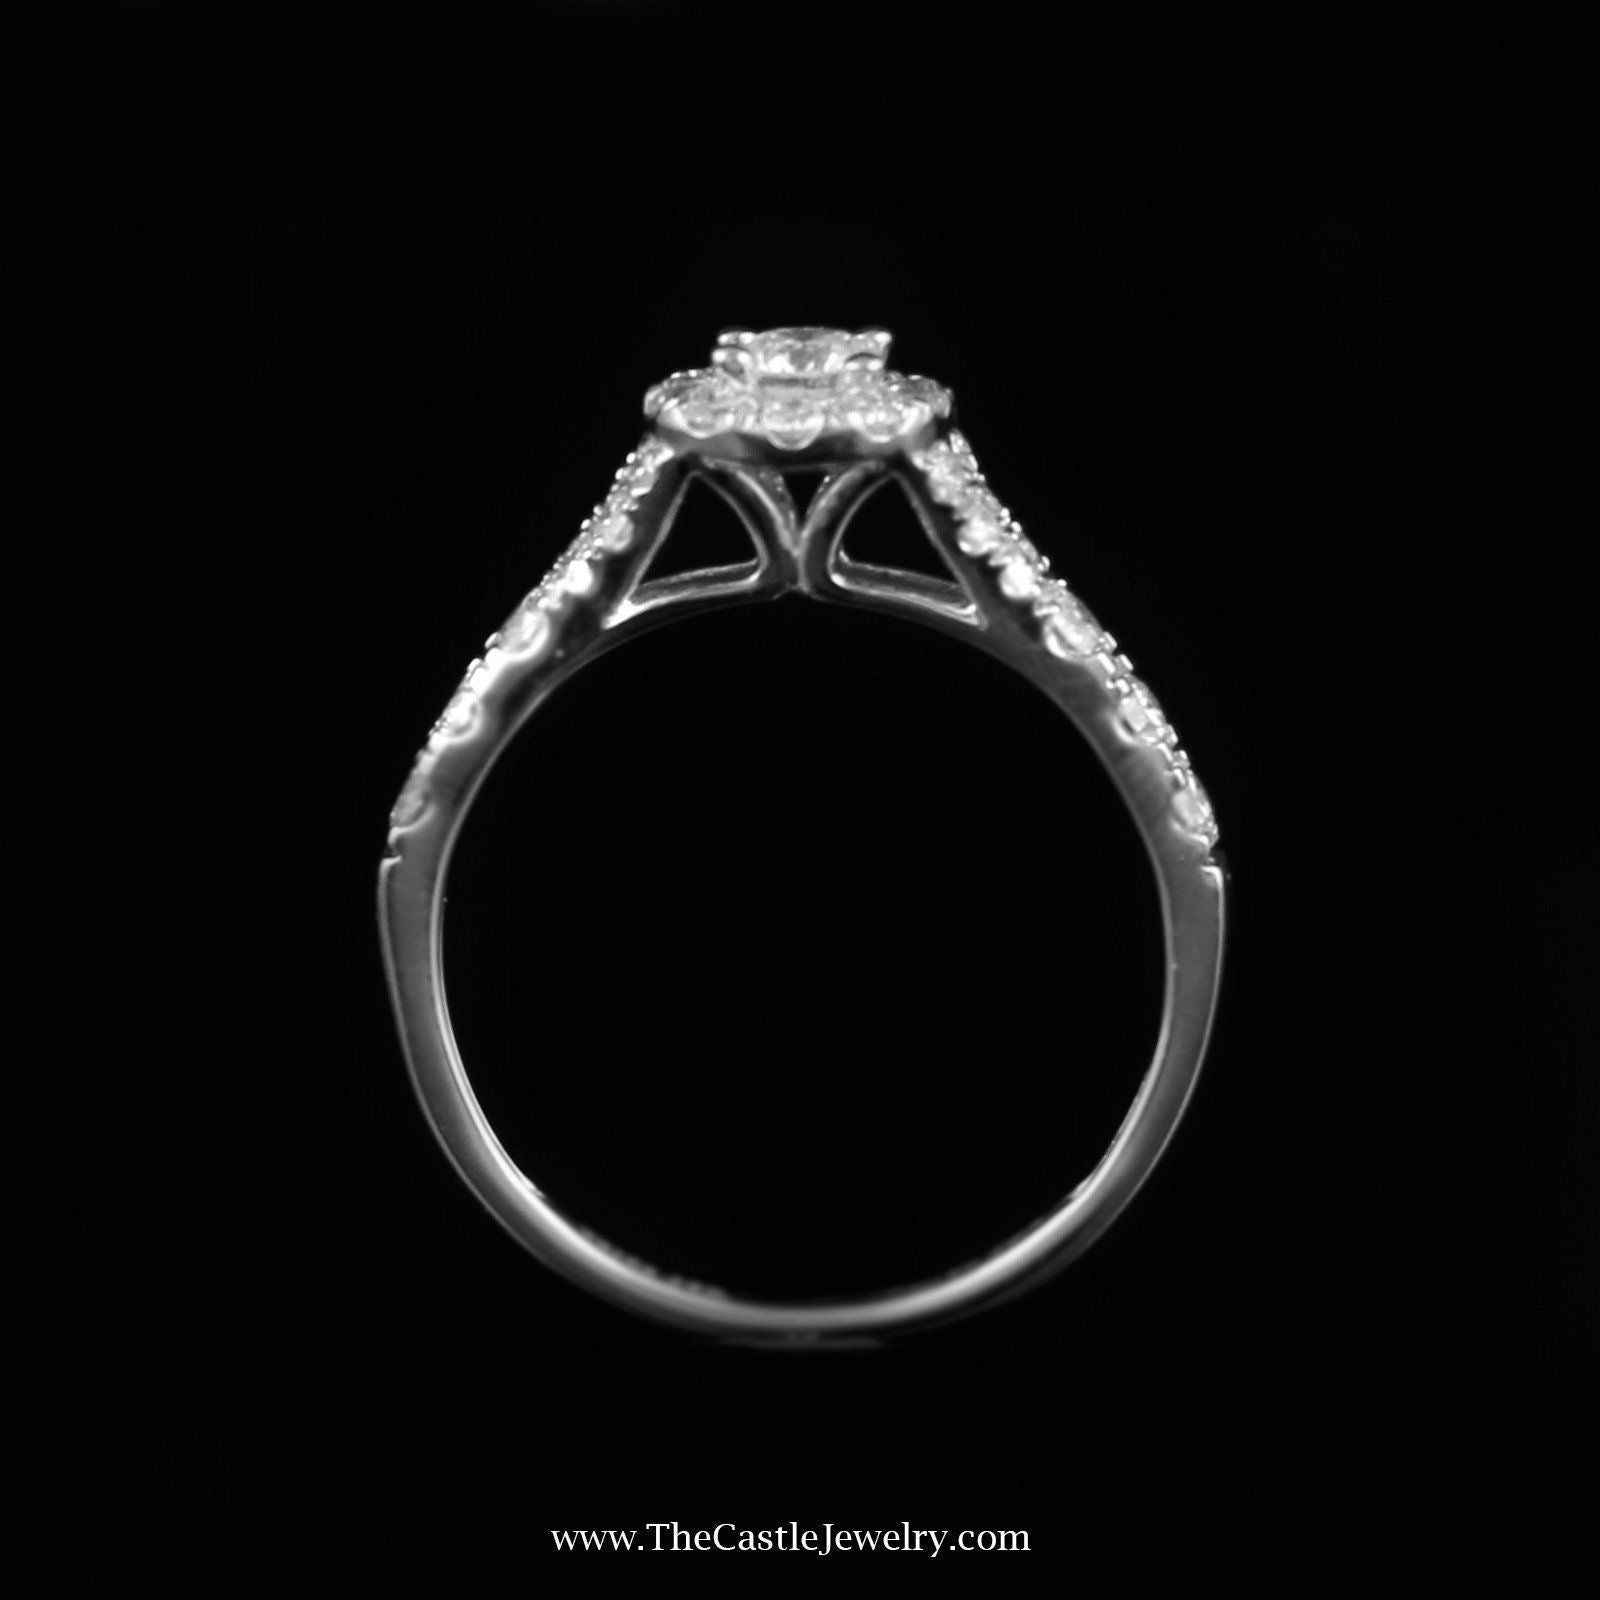 Crown Collection 1cttw Diamond Bridal Set w/ Halo Accent in 14K White Gold-1